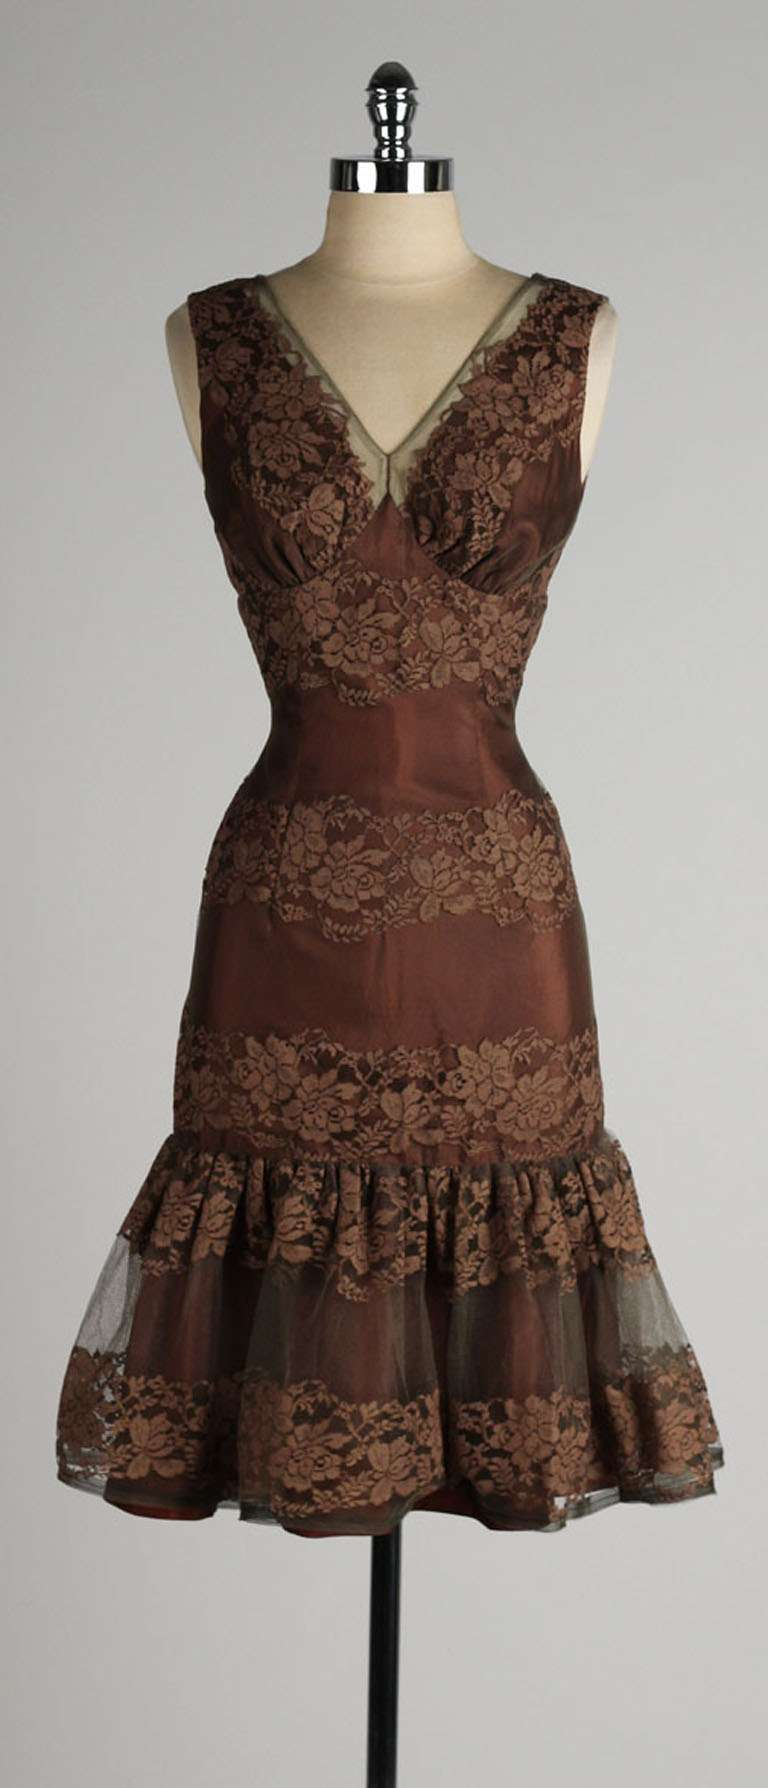 Vintage 1950\'s Chocolate Brown Lace Cocktail Dress at 1stdibs